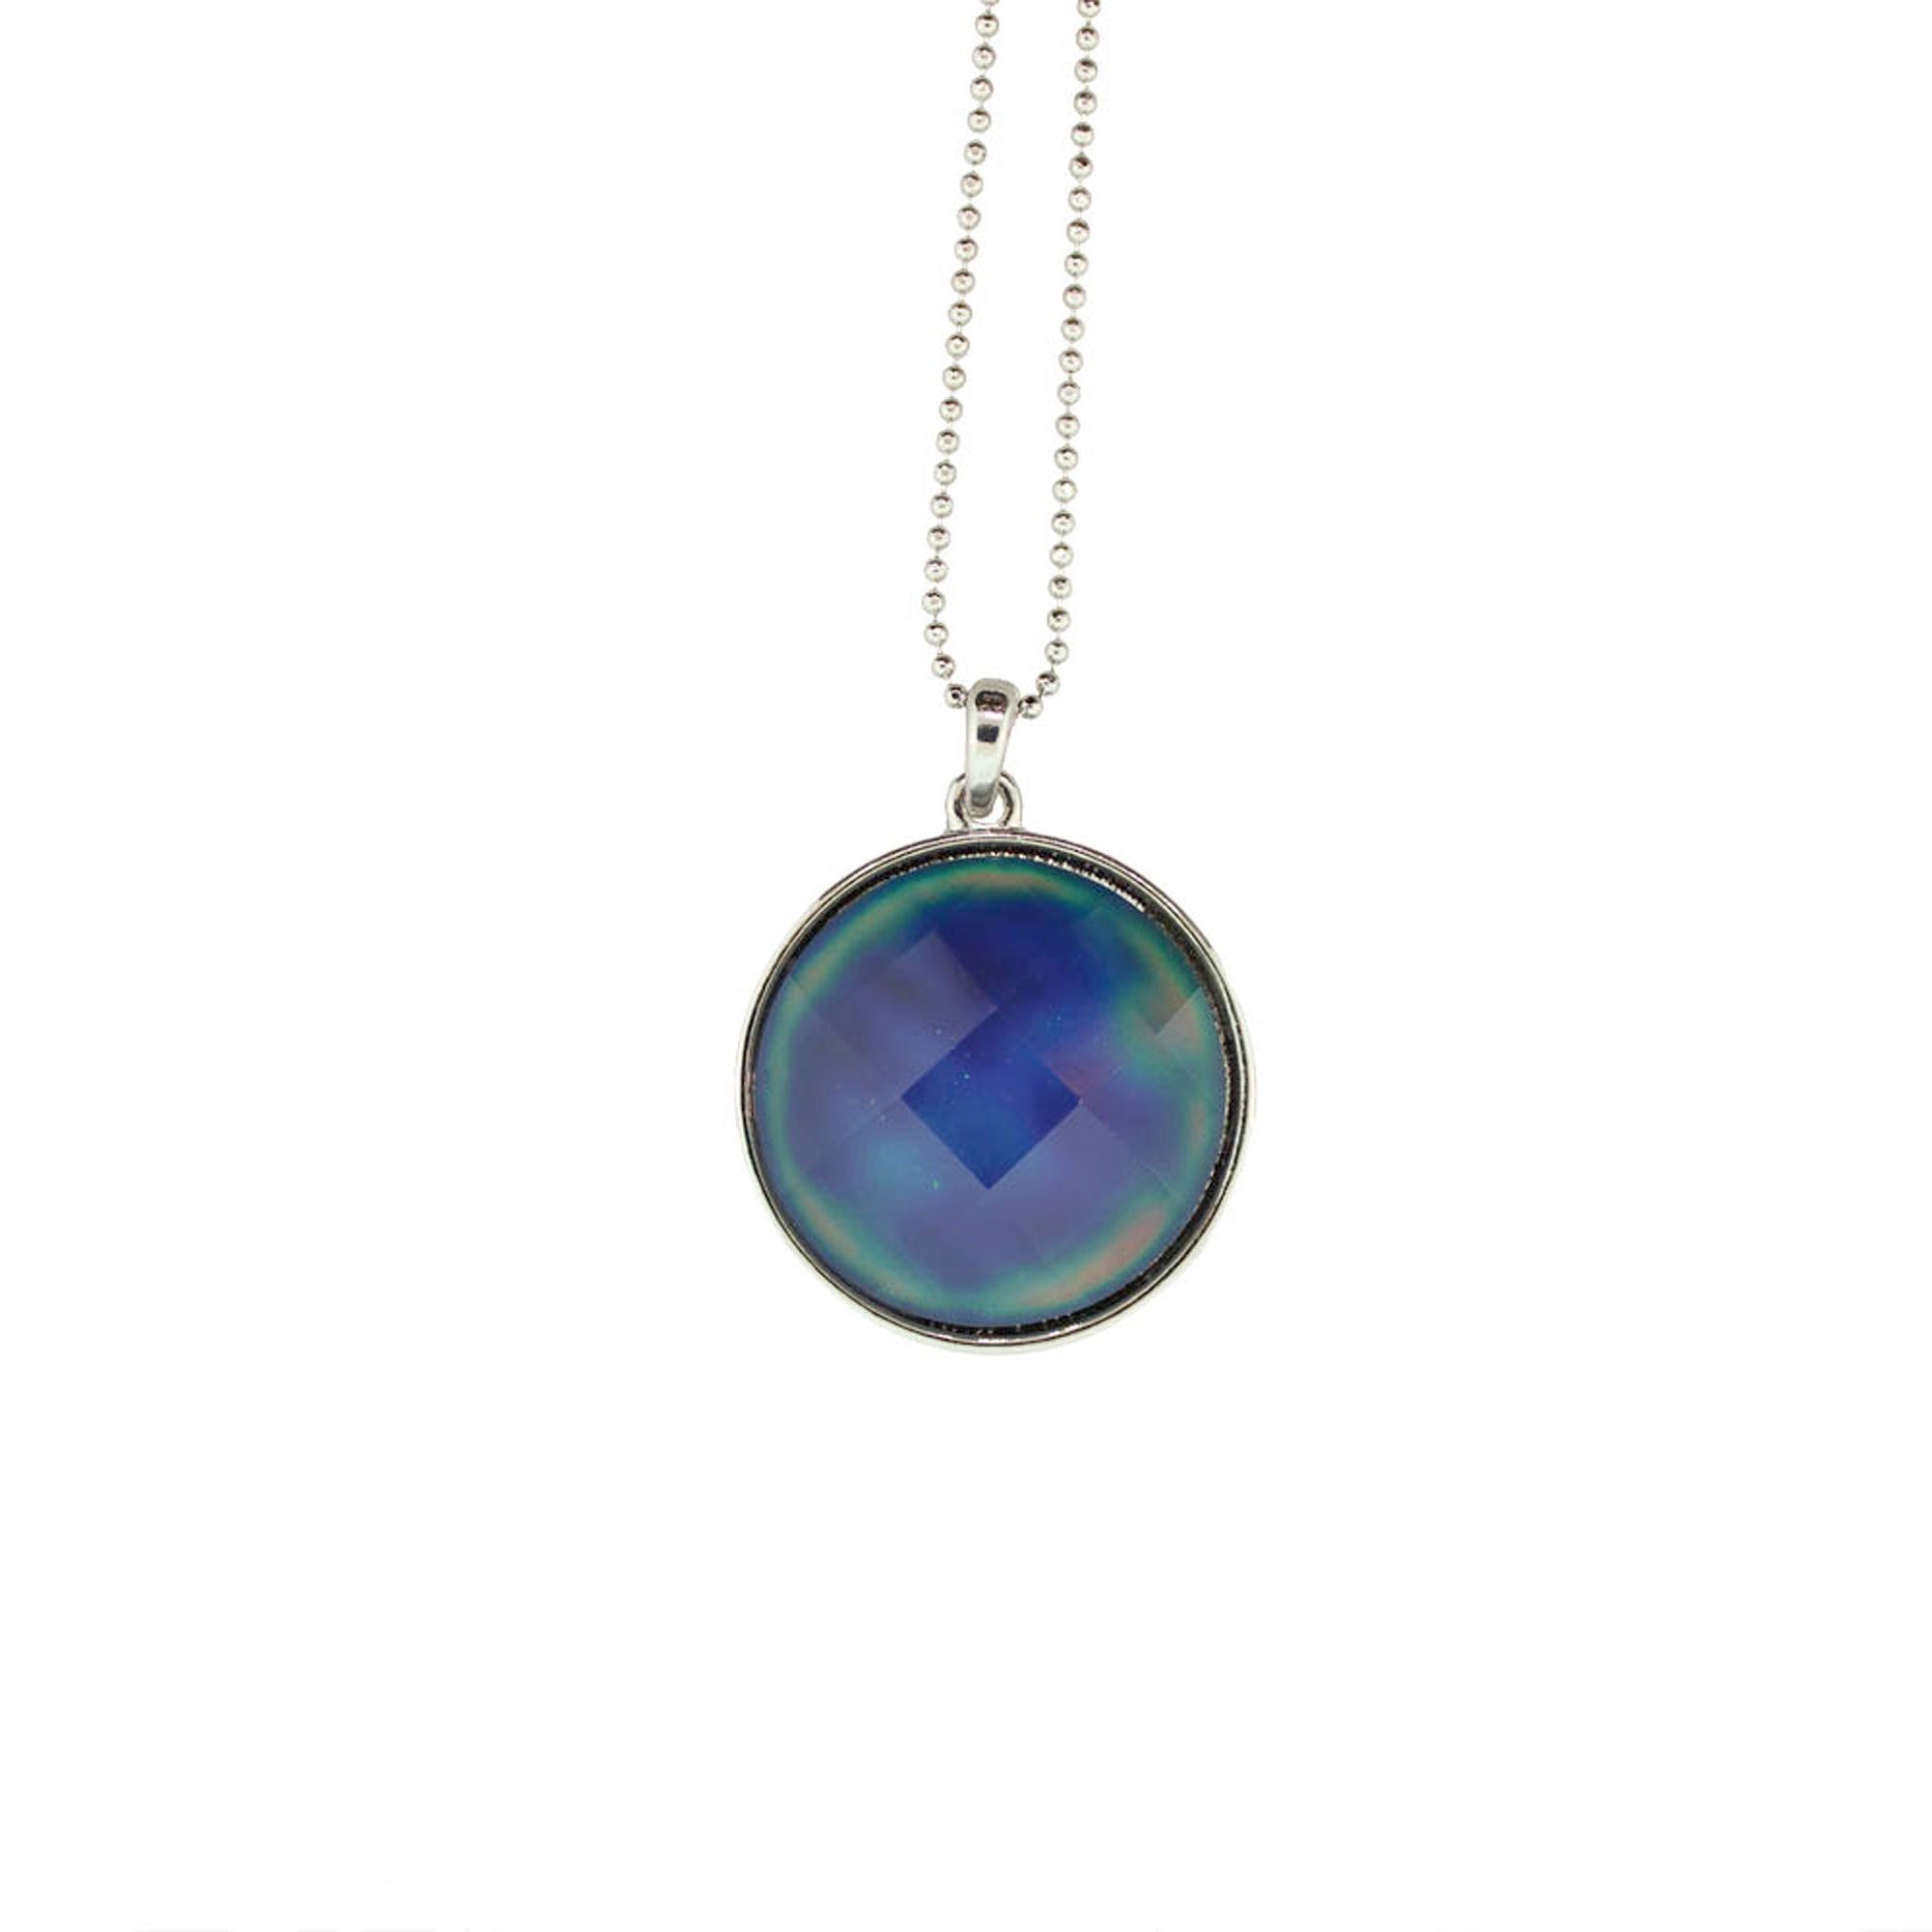 pendant designs round image gaudet necklace products not renee